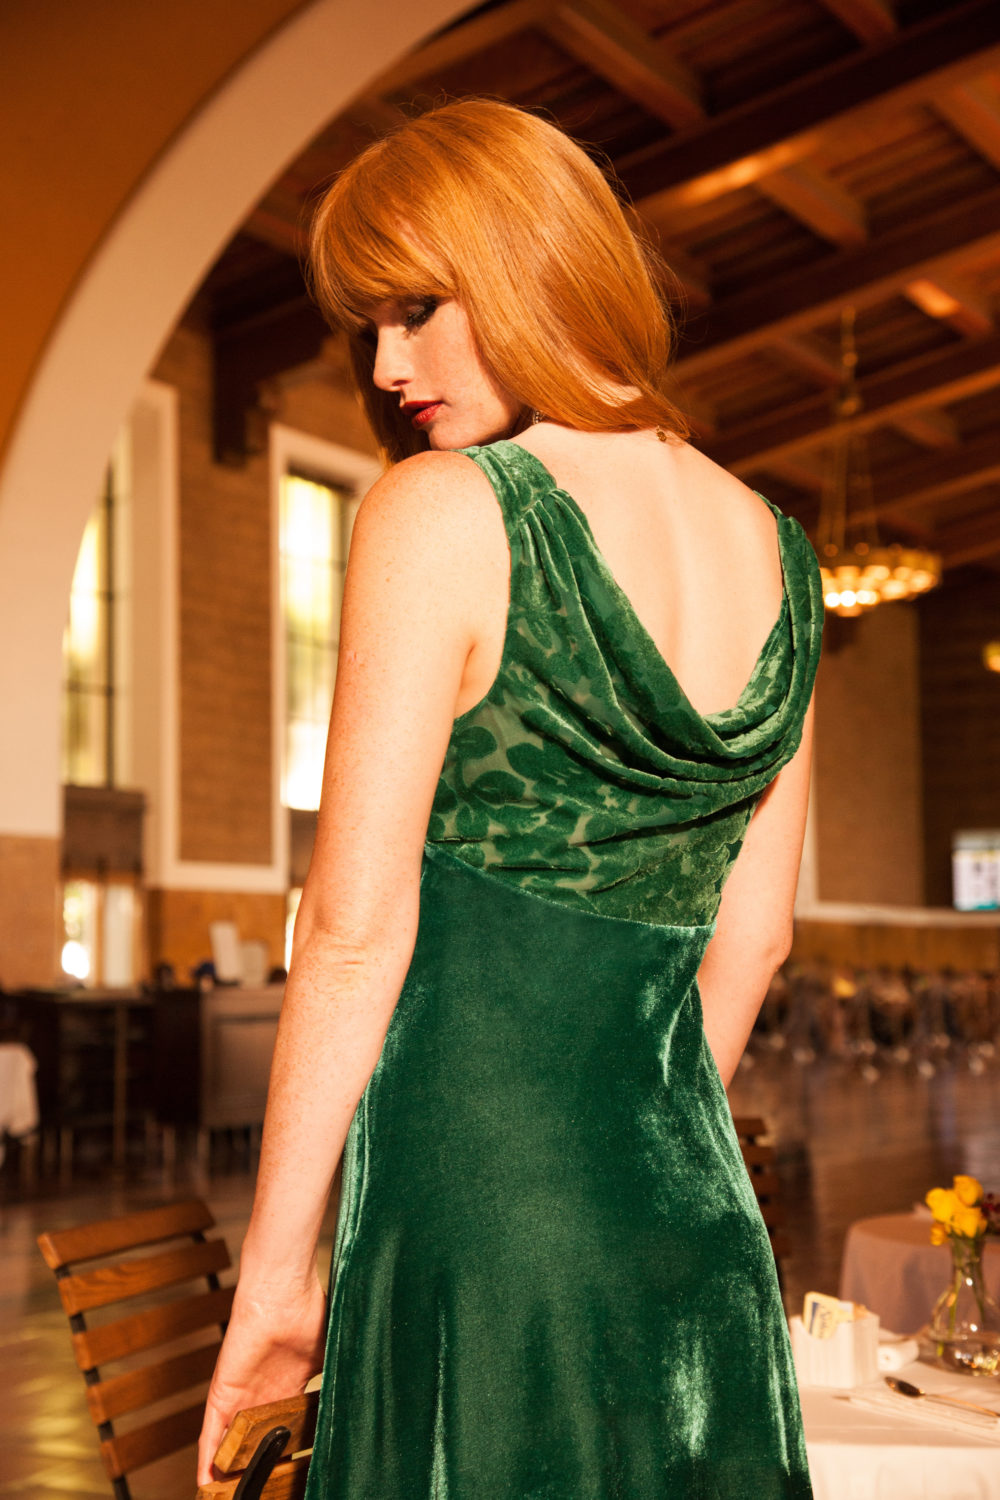 3_ModCloth_Pin-Up-to-the-Challenge-Velvet-Dress-in-Emerald-1-e1475866886670.jpg